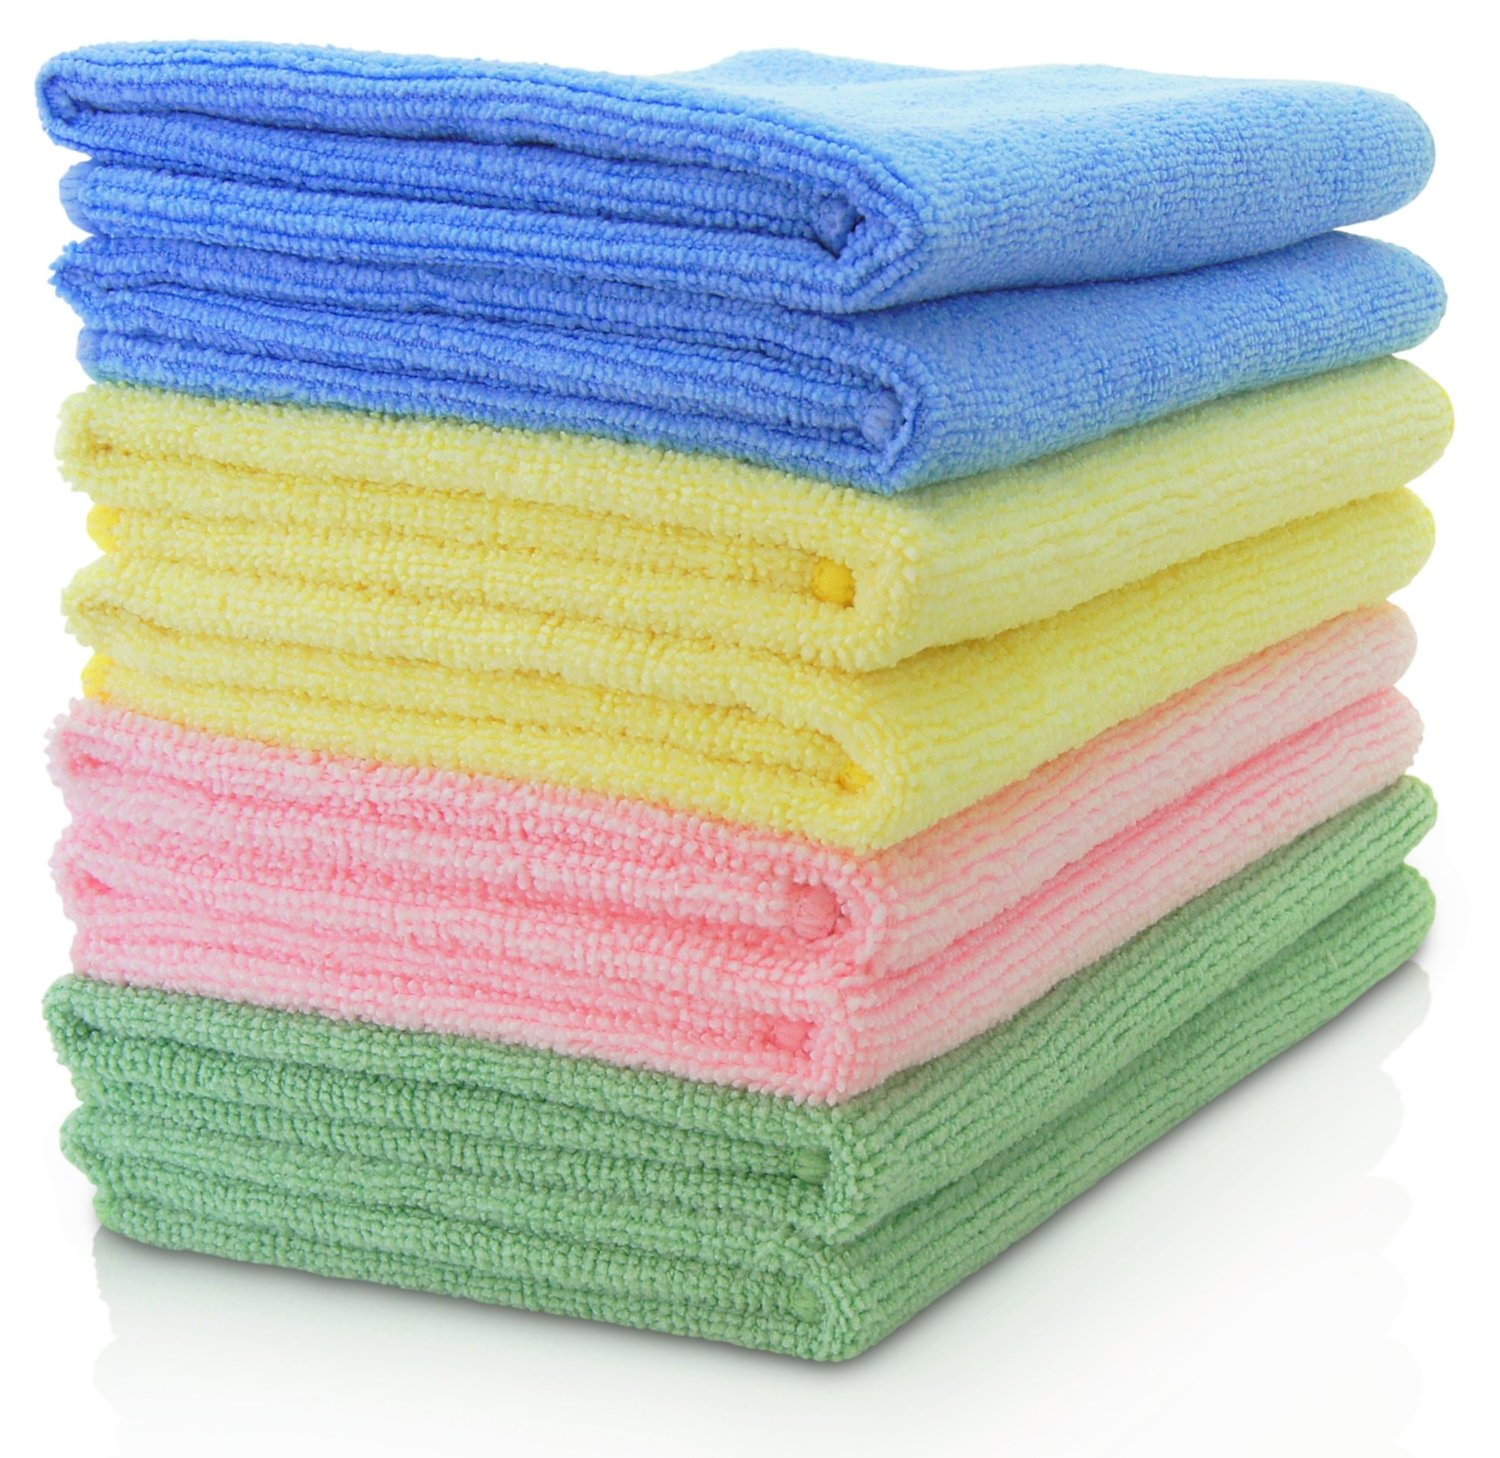 BC Textile Innovations - Microfiber Cloth